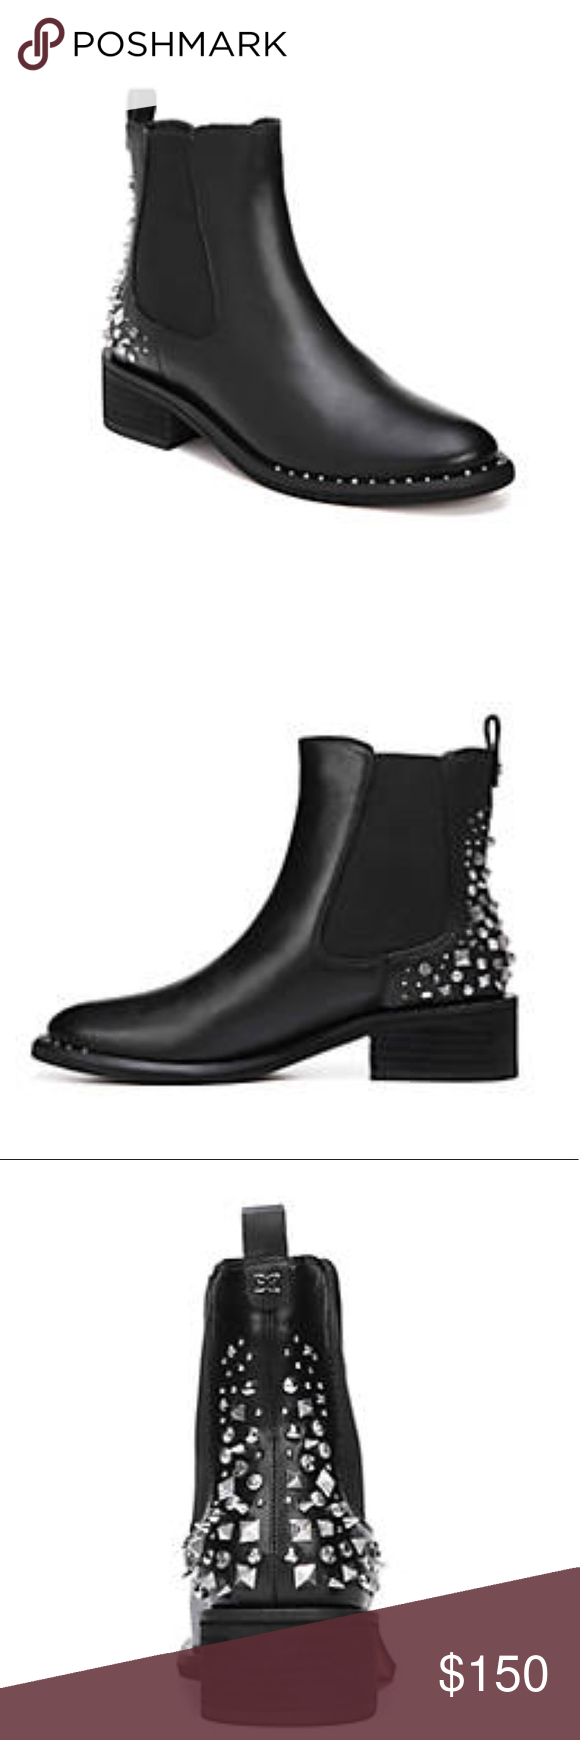 12a6657860c2 Sam Edelman embellished bootie Chelsea Dover bootie with spikes  embellishment Sam Edelman Shoes Ankle Boots   Booties